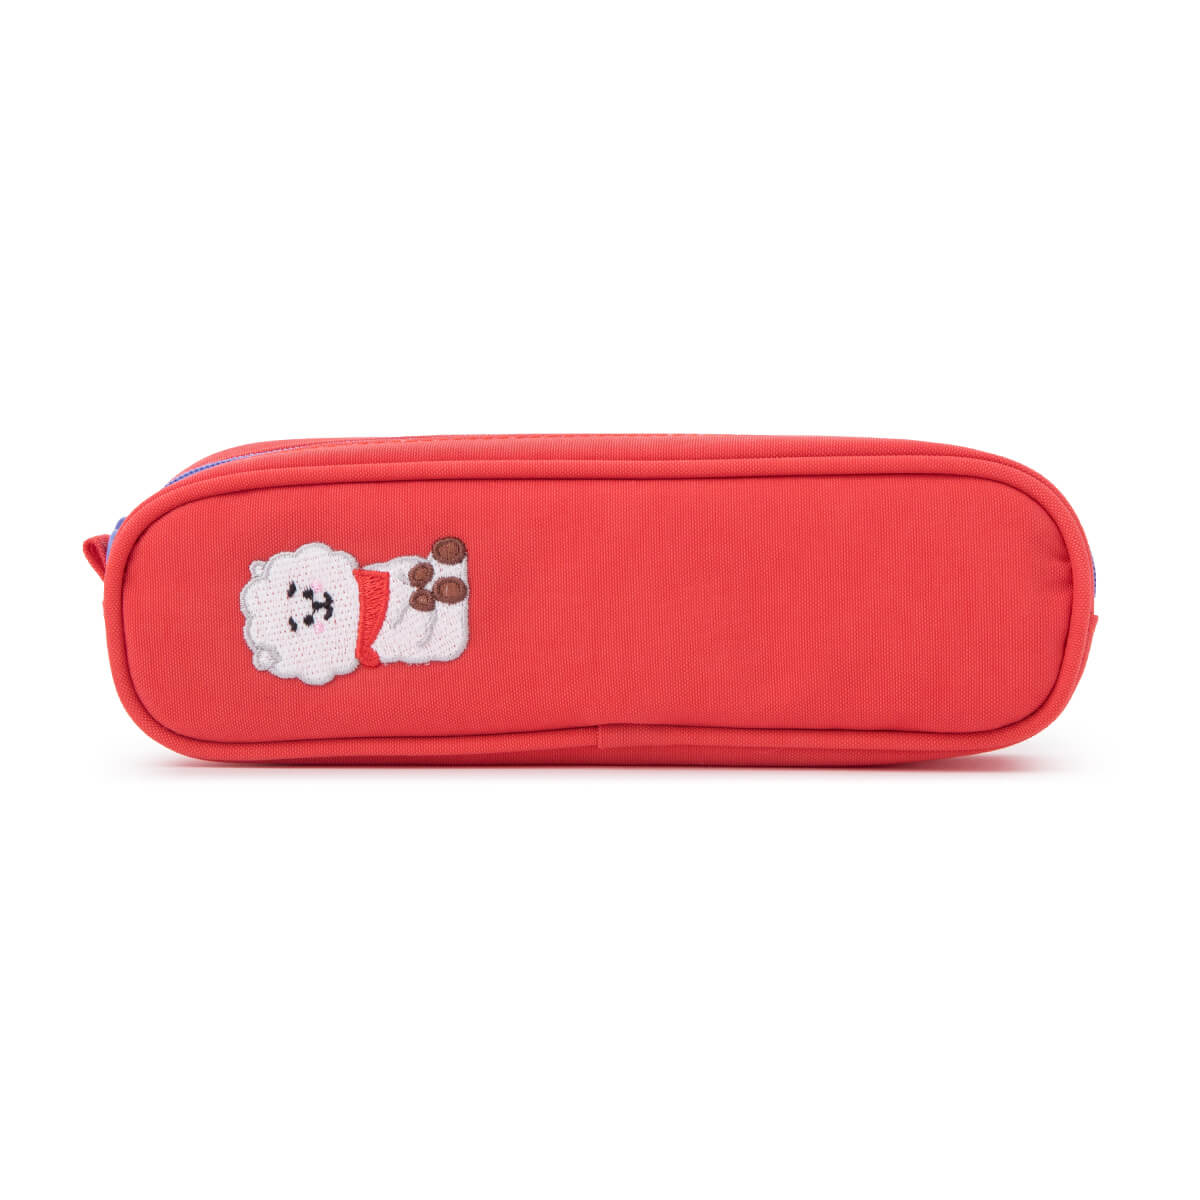 BT21 RJ Stitch Pencil Case